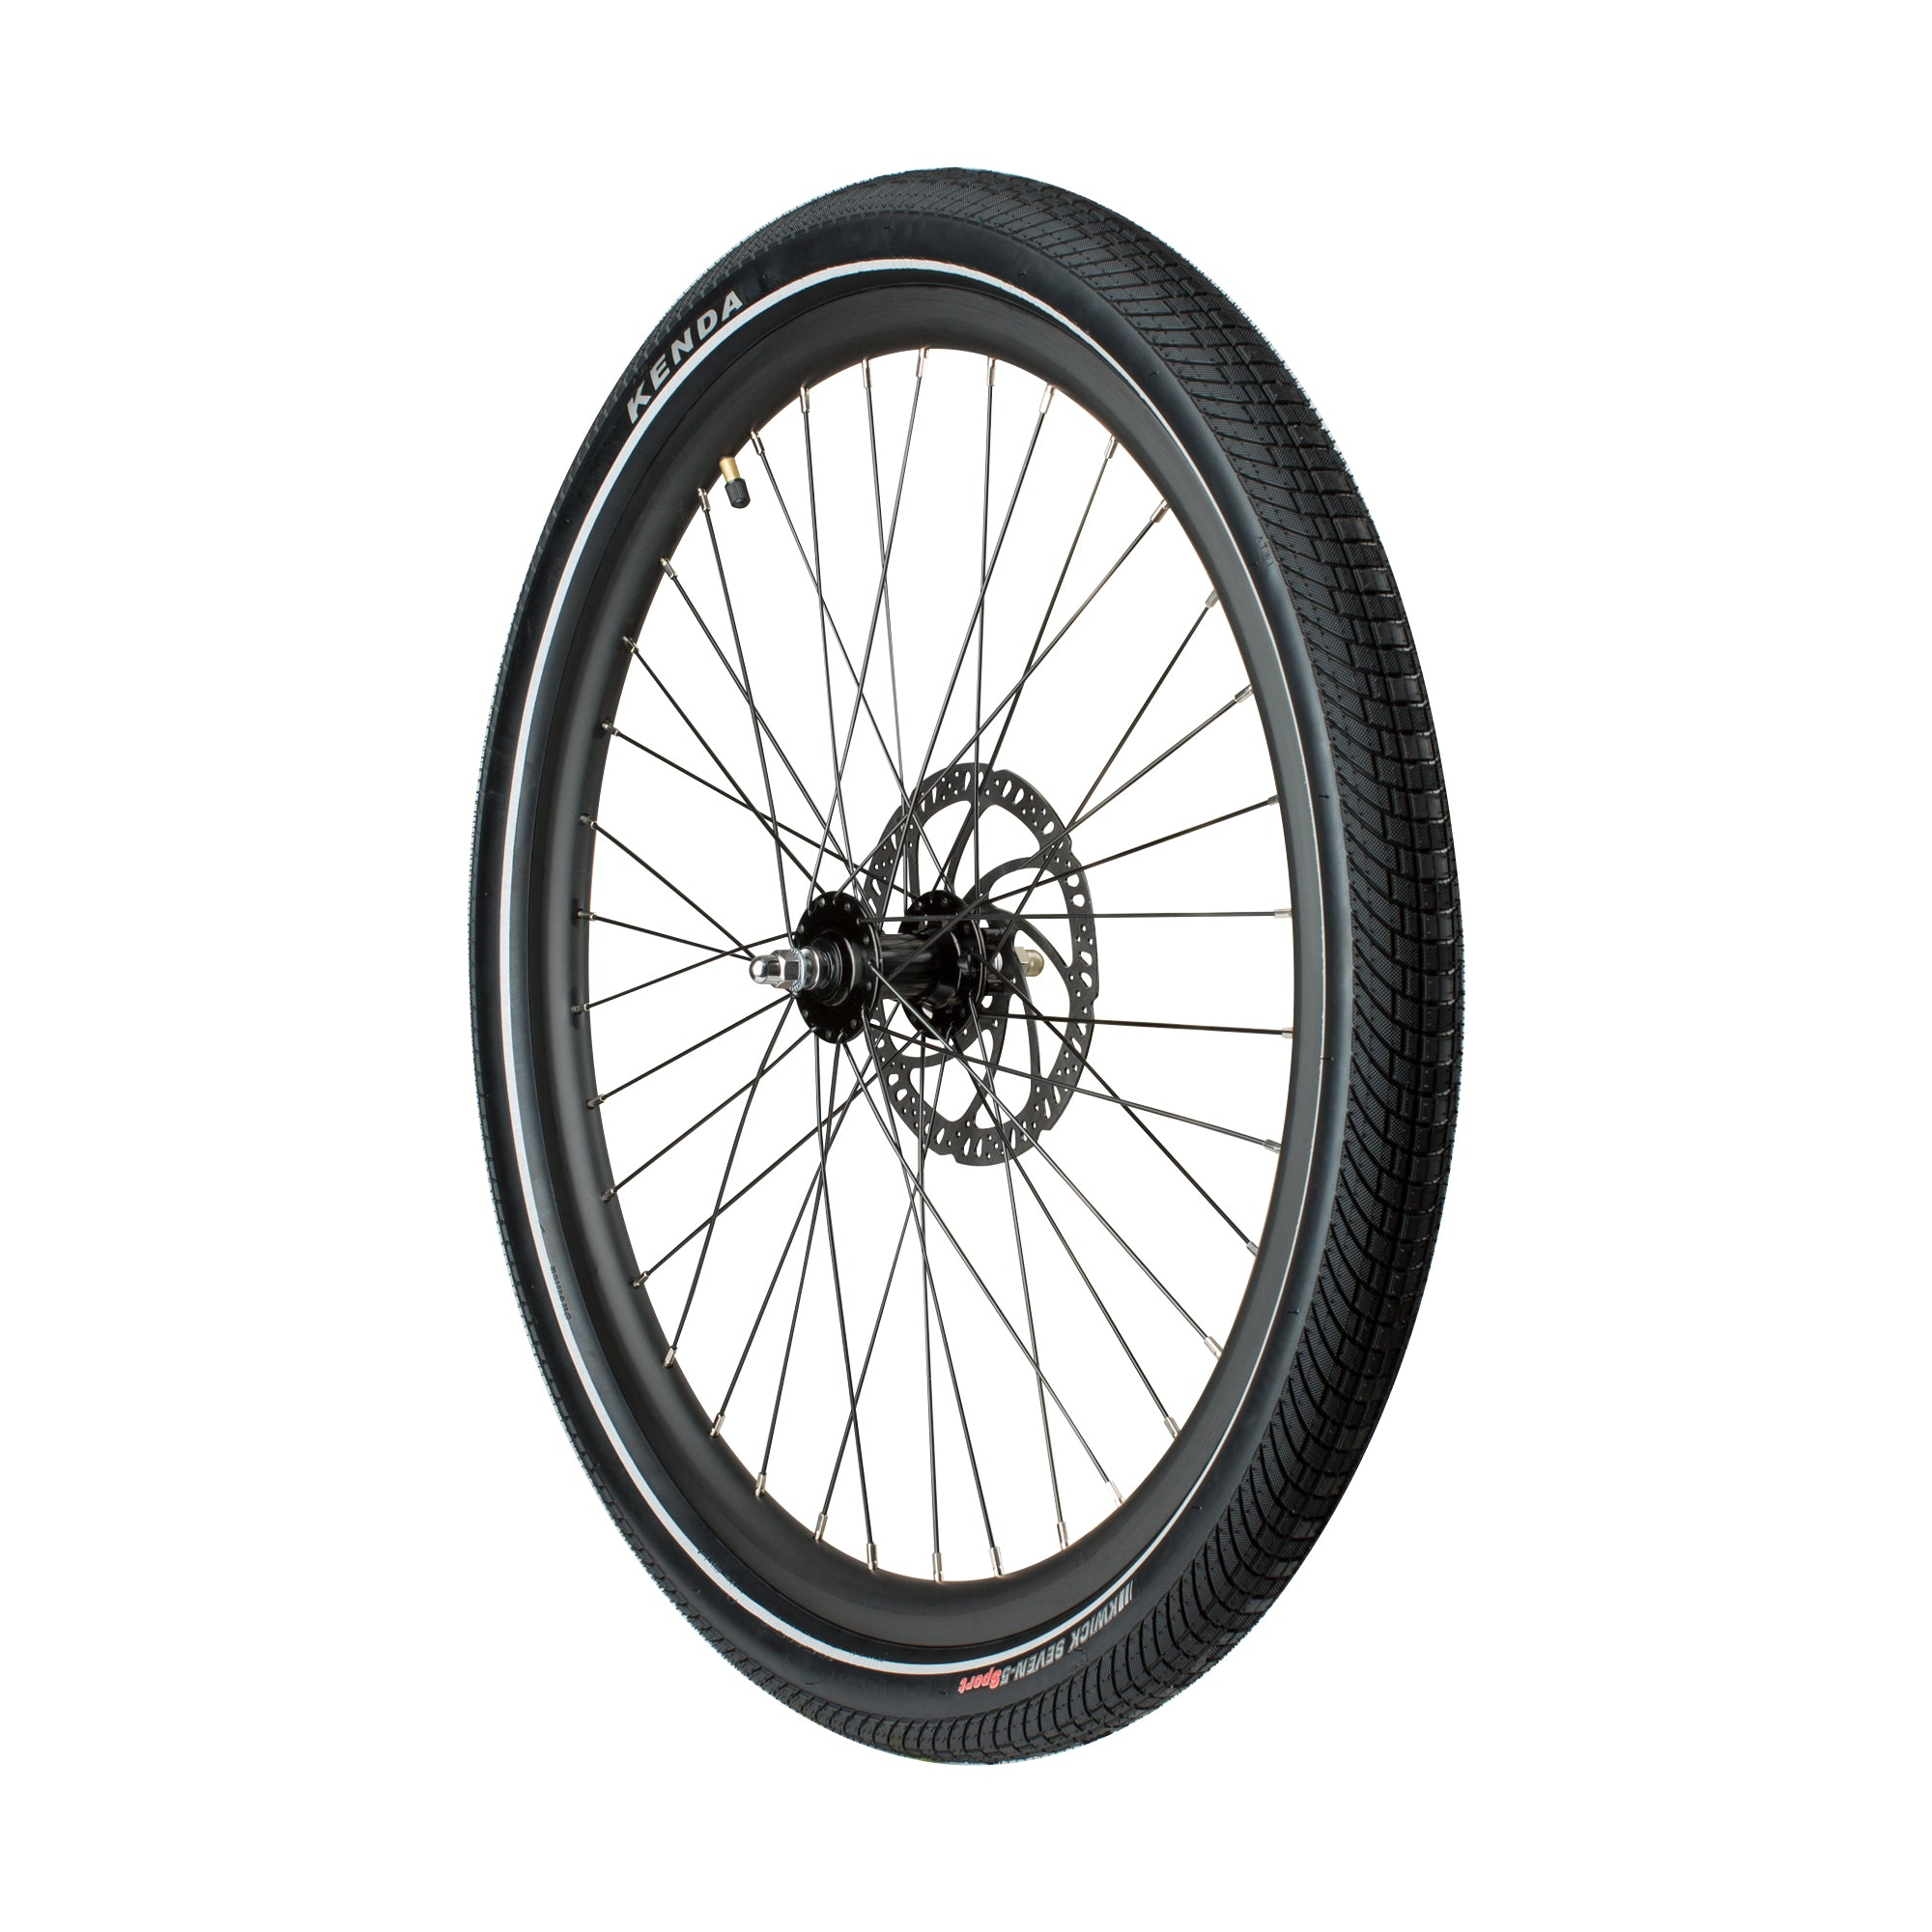 Aventon Pace 350 Replacement Front Wheel